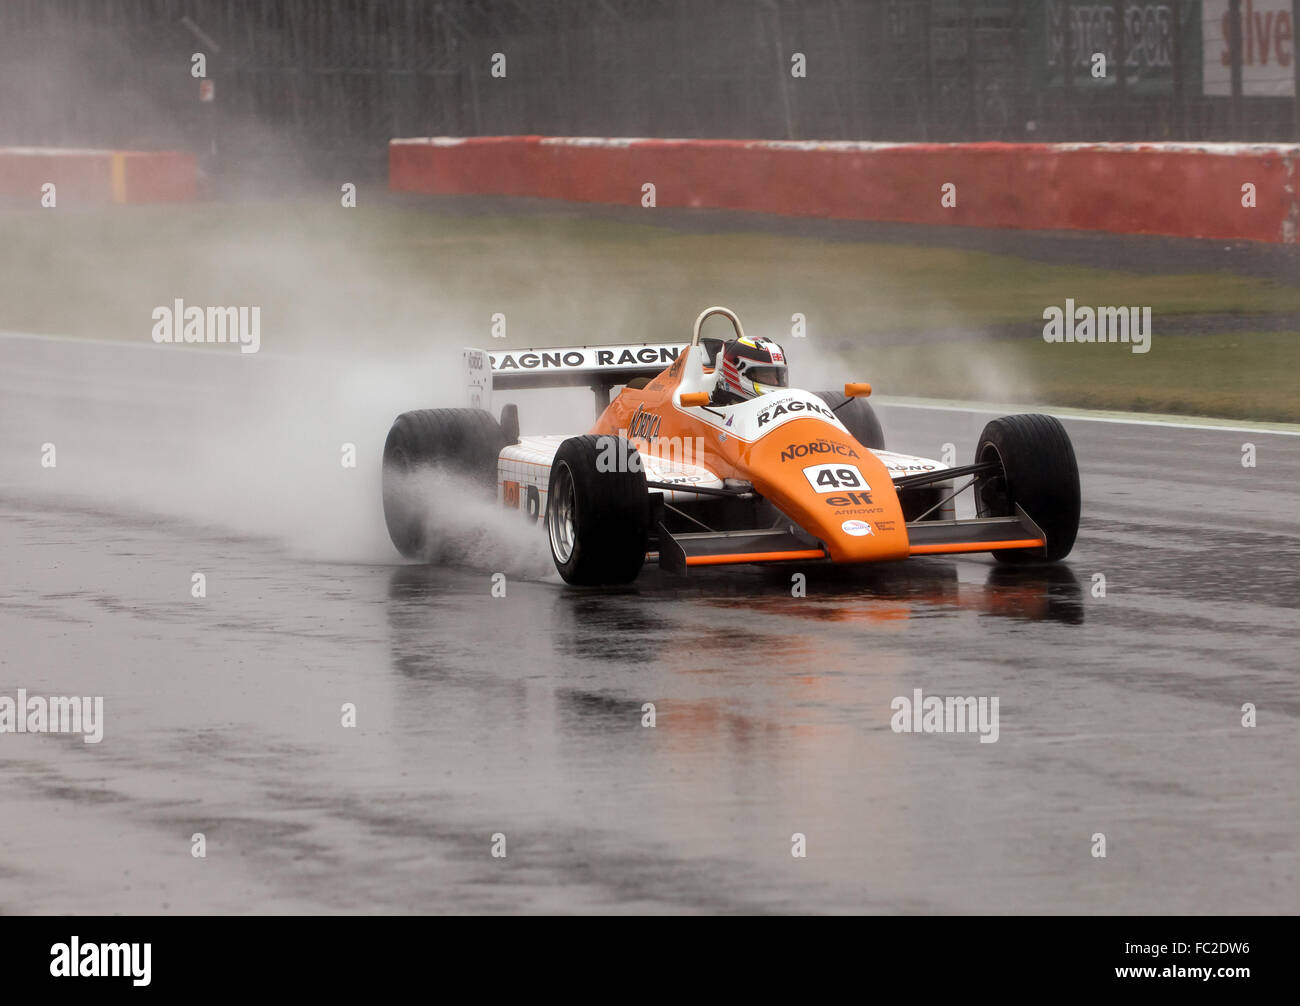 A 1982, Arrows A5 Formula 1 car, Qualifying in the rain, or the FIA Historic Formula One Race at the Silverstone - Stock Image